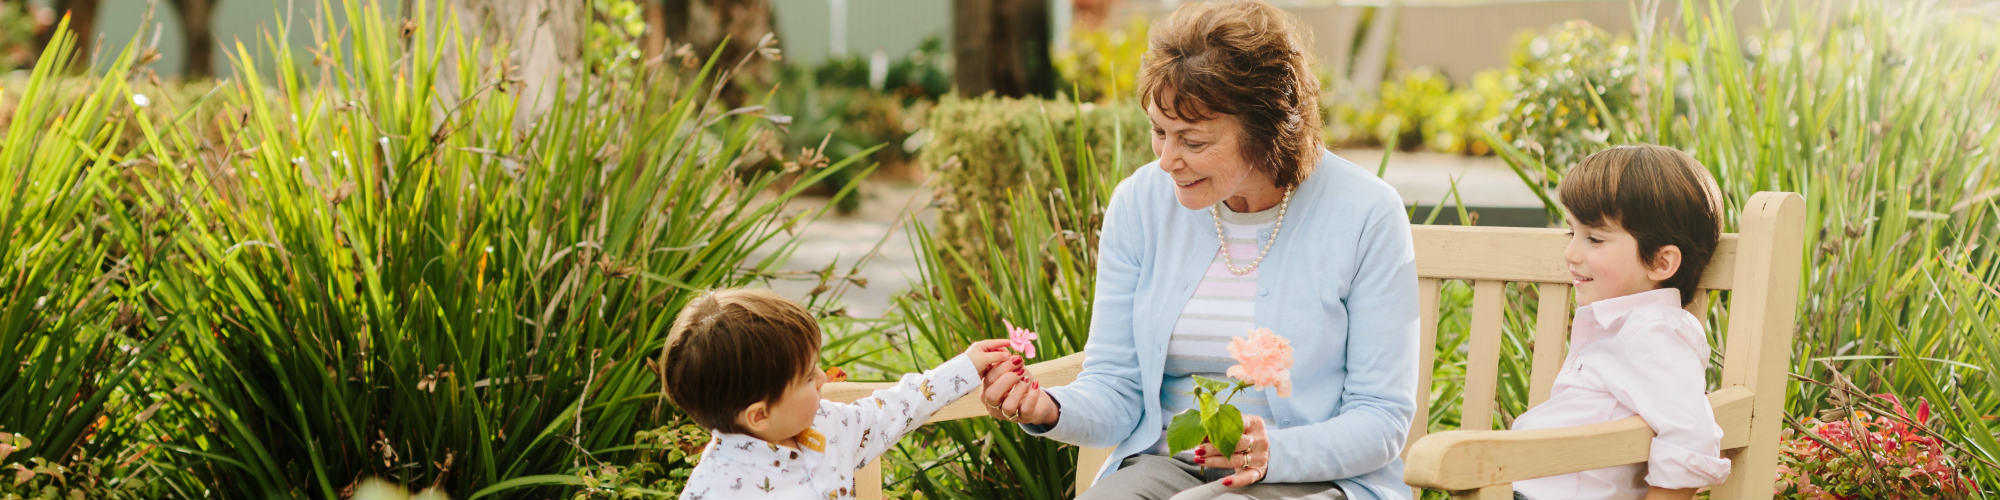 Aveo-Corporate_Lifestyle_Grandmother-with-flowers-from-grandchildren-on-bench_external_hero-2000×500